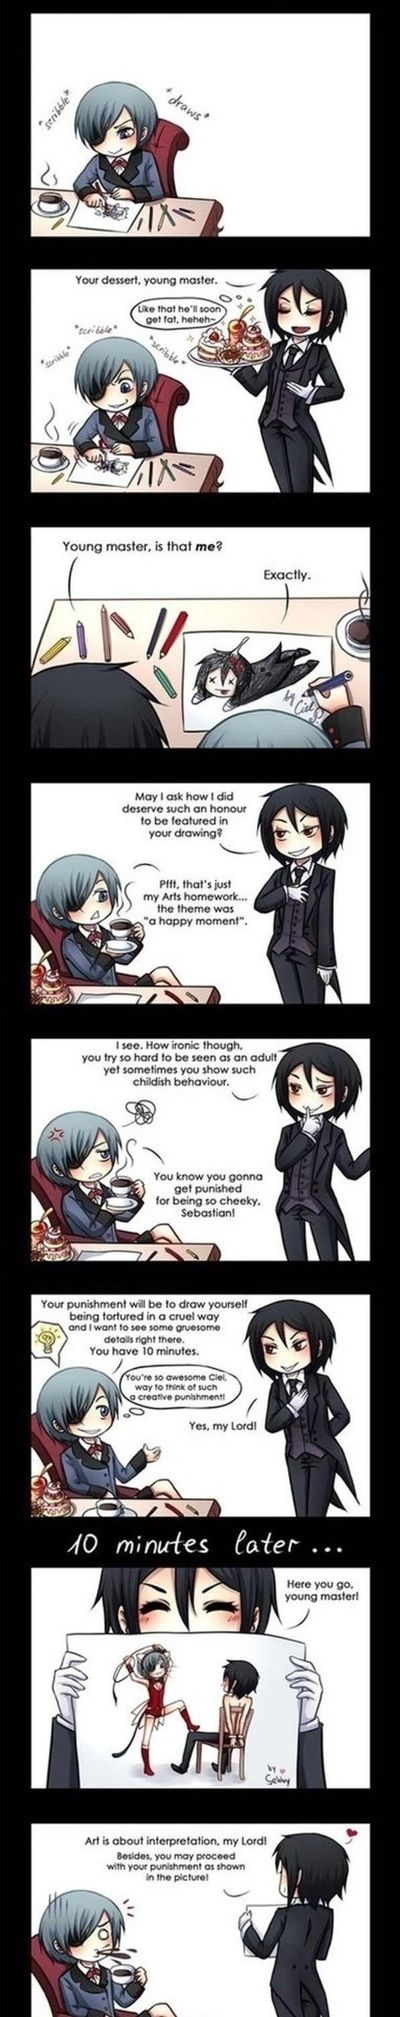 Black Butler ~~ Fantasies on full display.